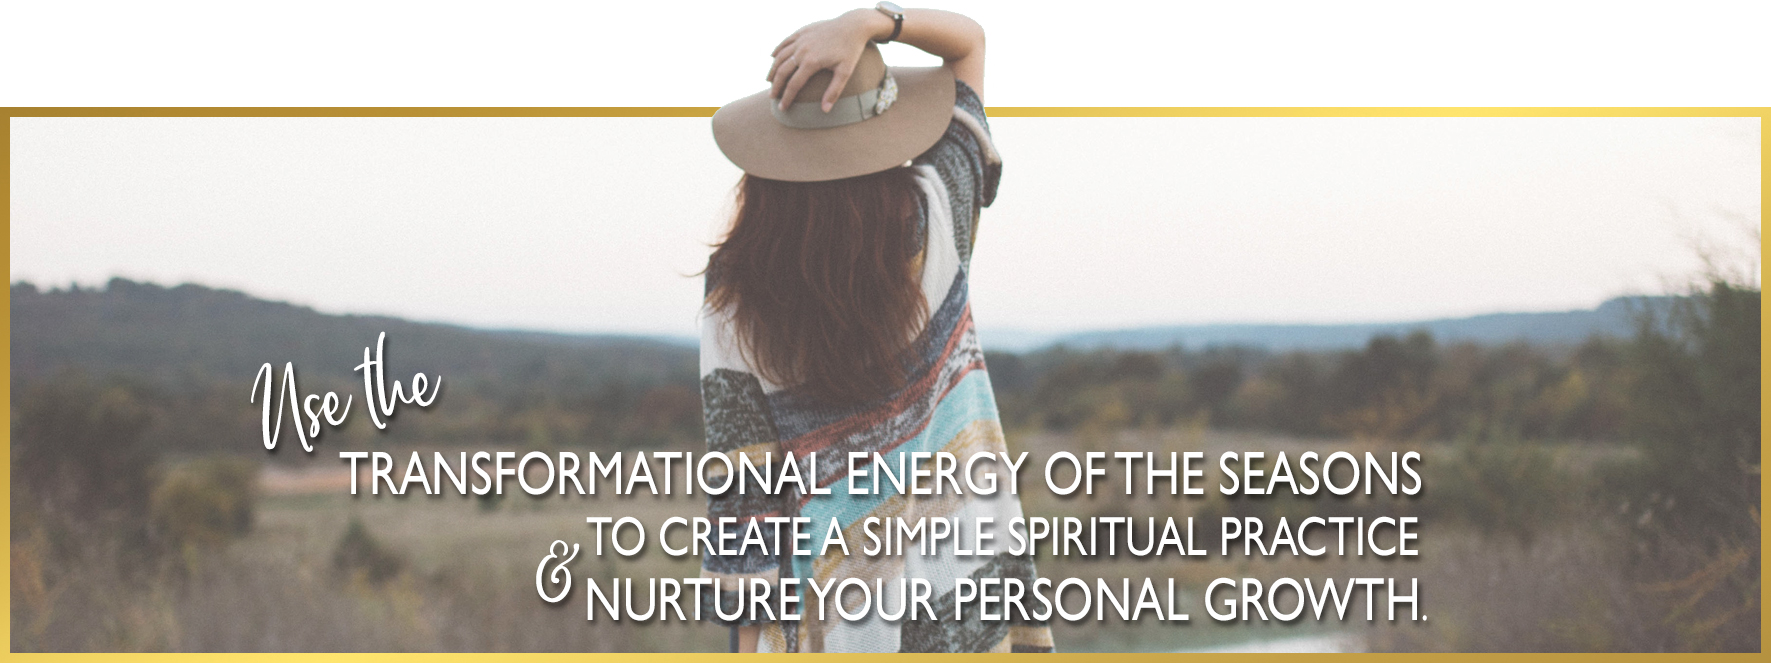 Use the transformational energy of the seasons to create a spiritual practice & nurture your personal growth.